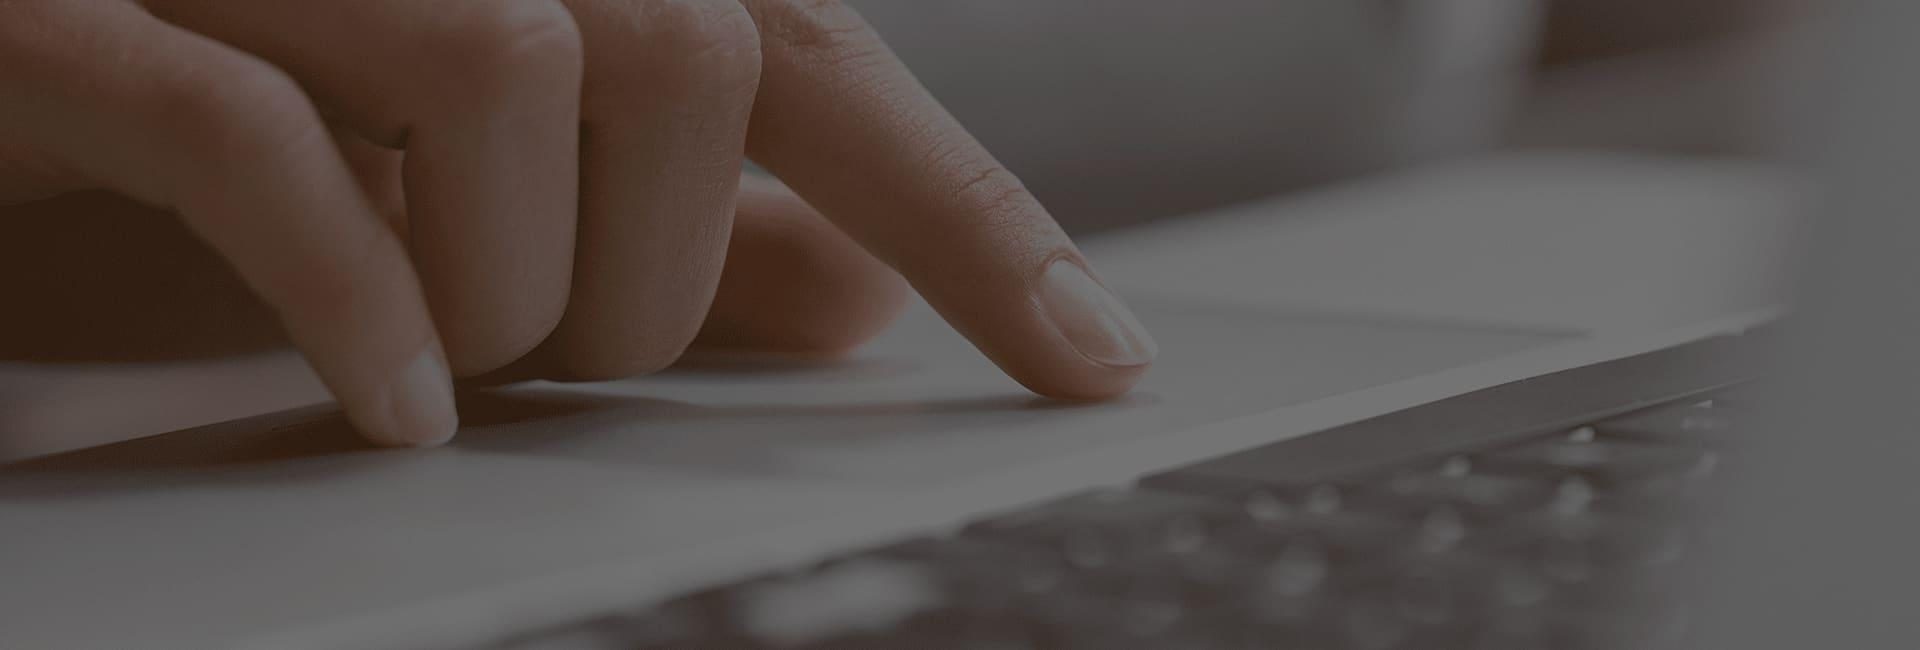 a finger moving across the mousepad on a laptop